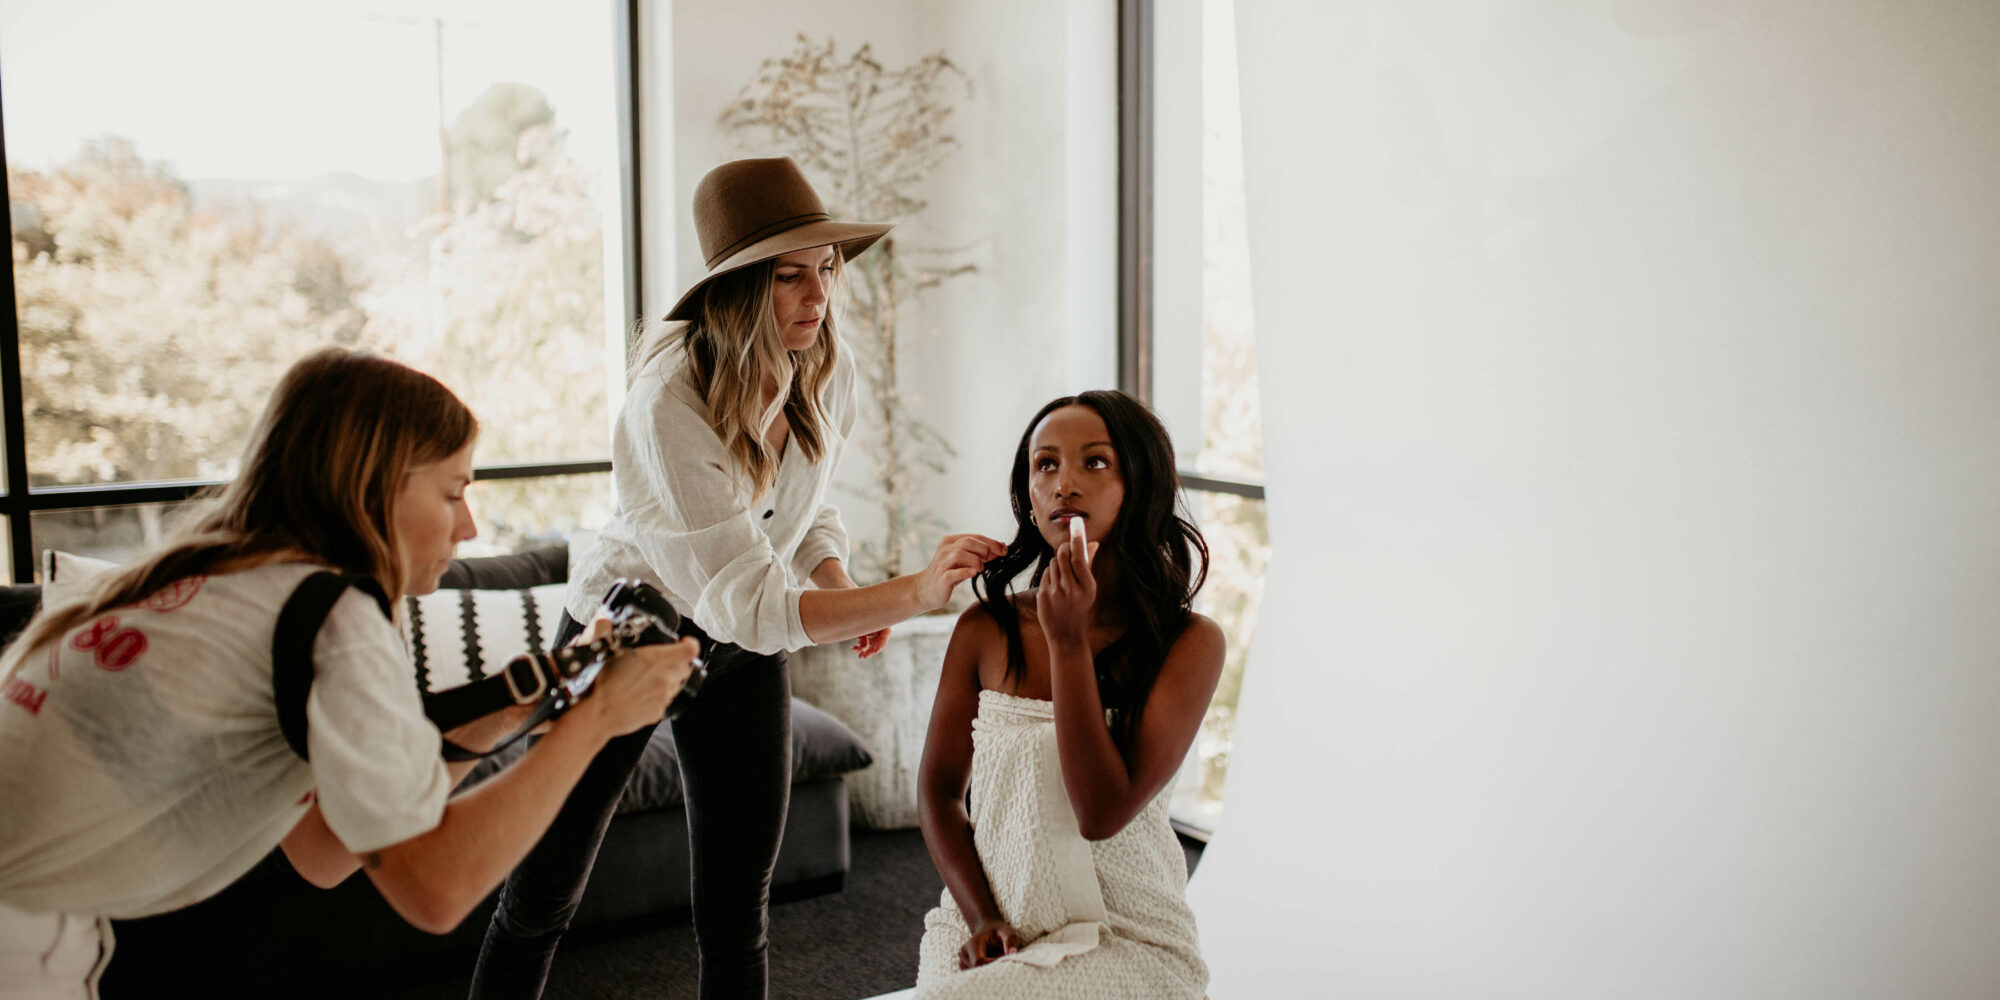 Behind The Lens: How Indie Beauty Brands Produce Striking Photos On Tight Budgets